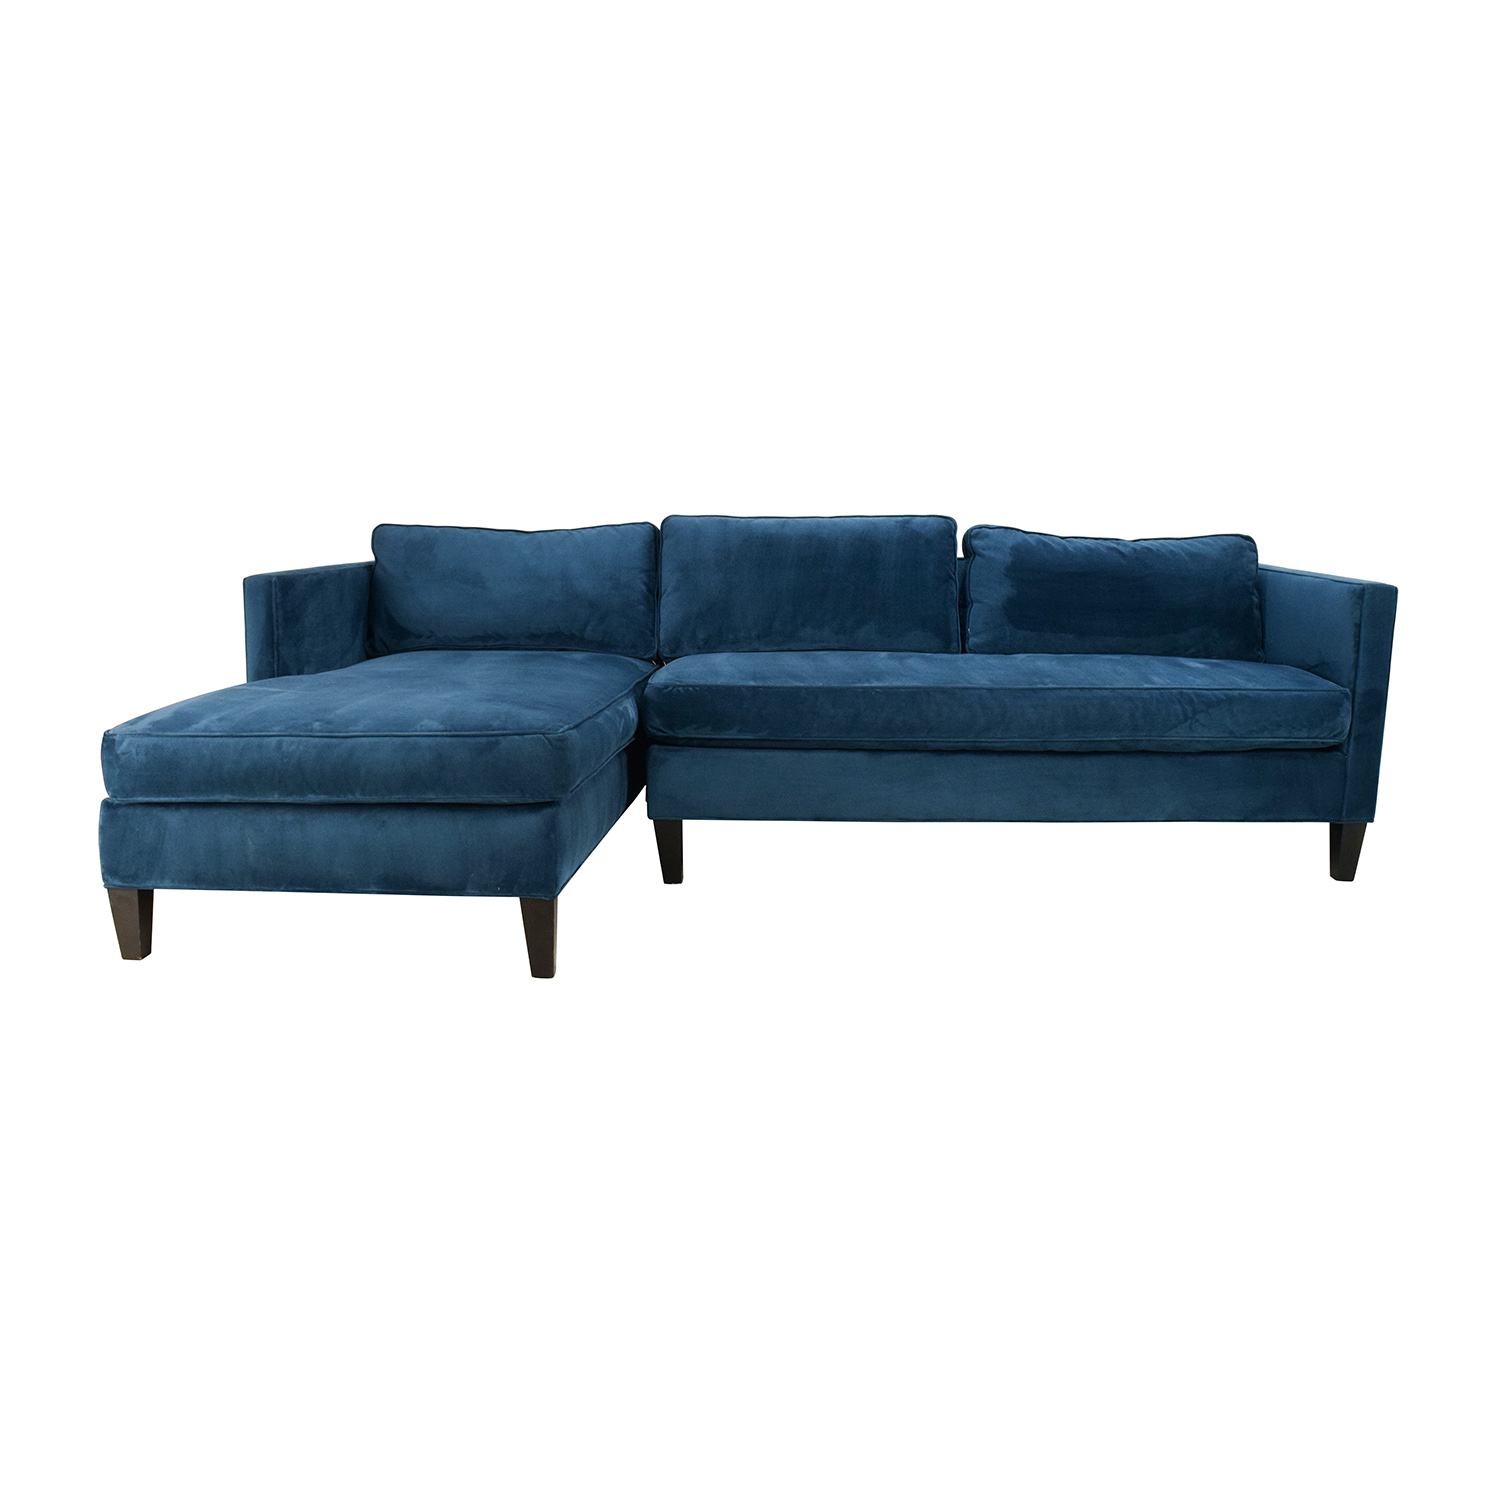 shop West Elm Dunham Sectional Sofa West Elm Sofas ...  sc 1 st  Furnishare : dunham sectional - Sectionals, Sofas & Couches